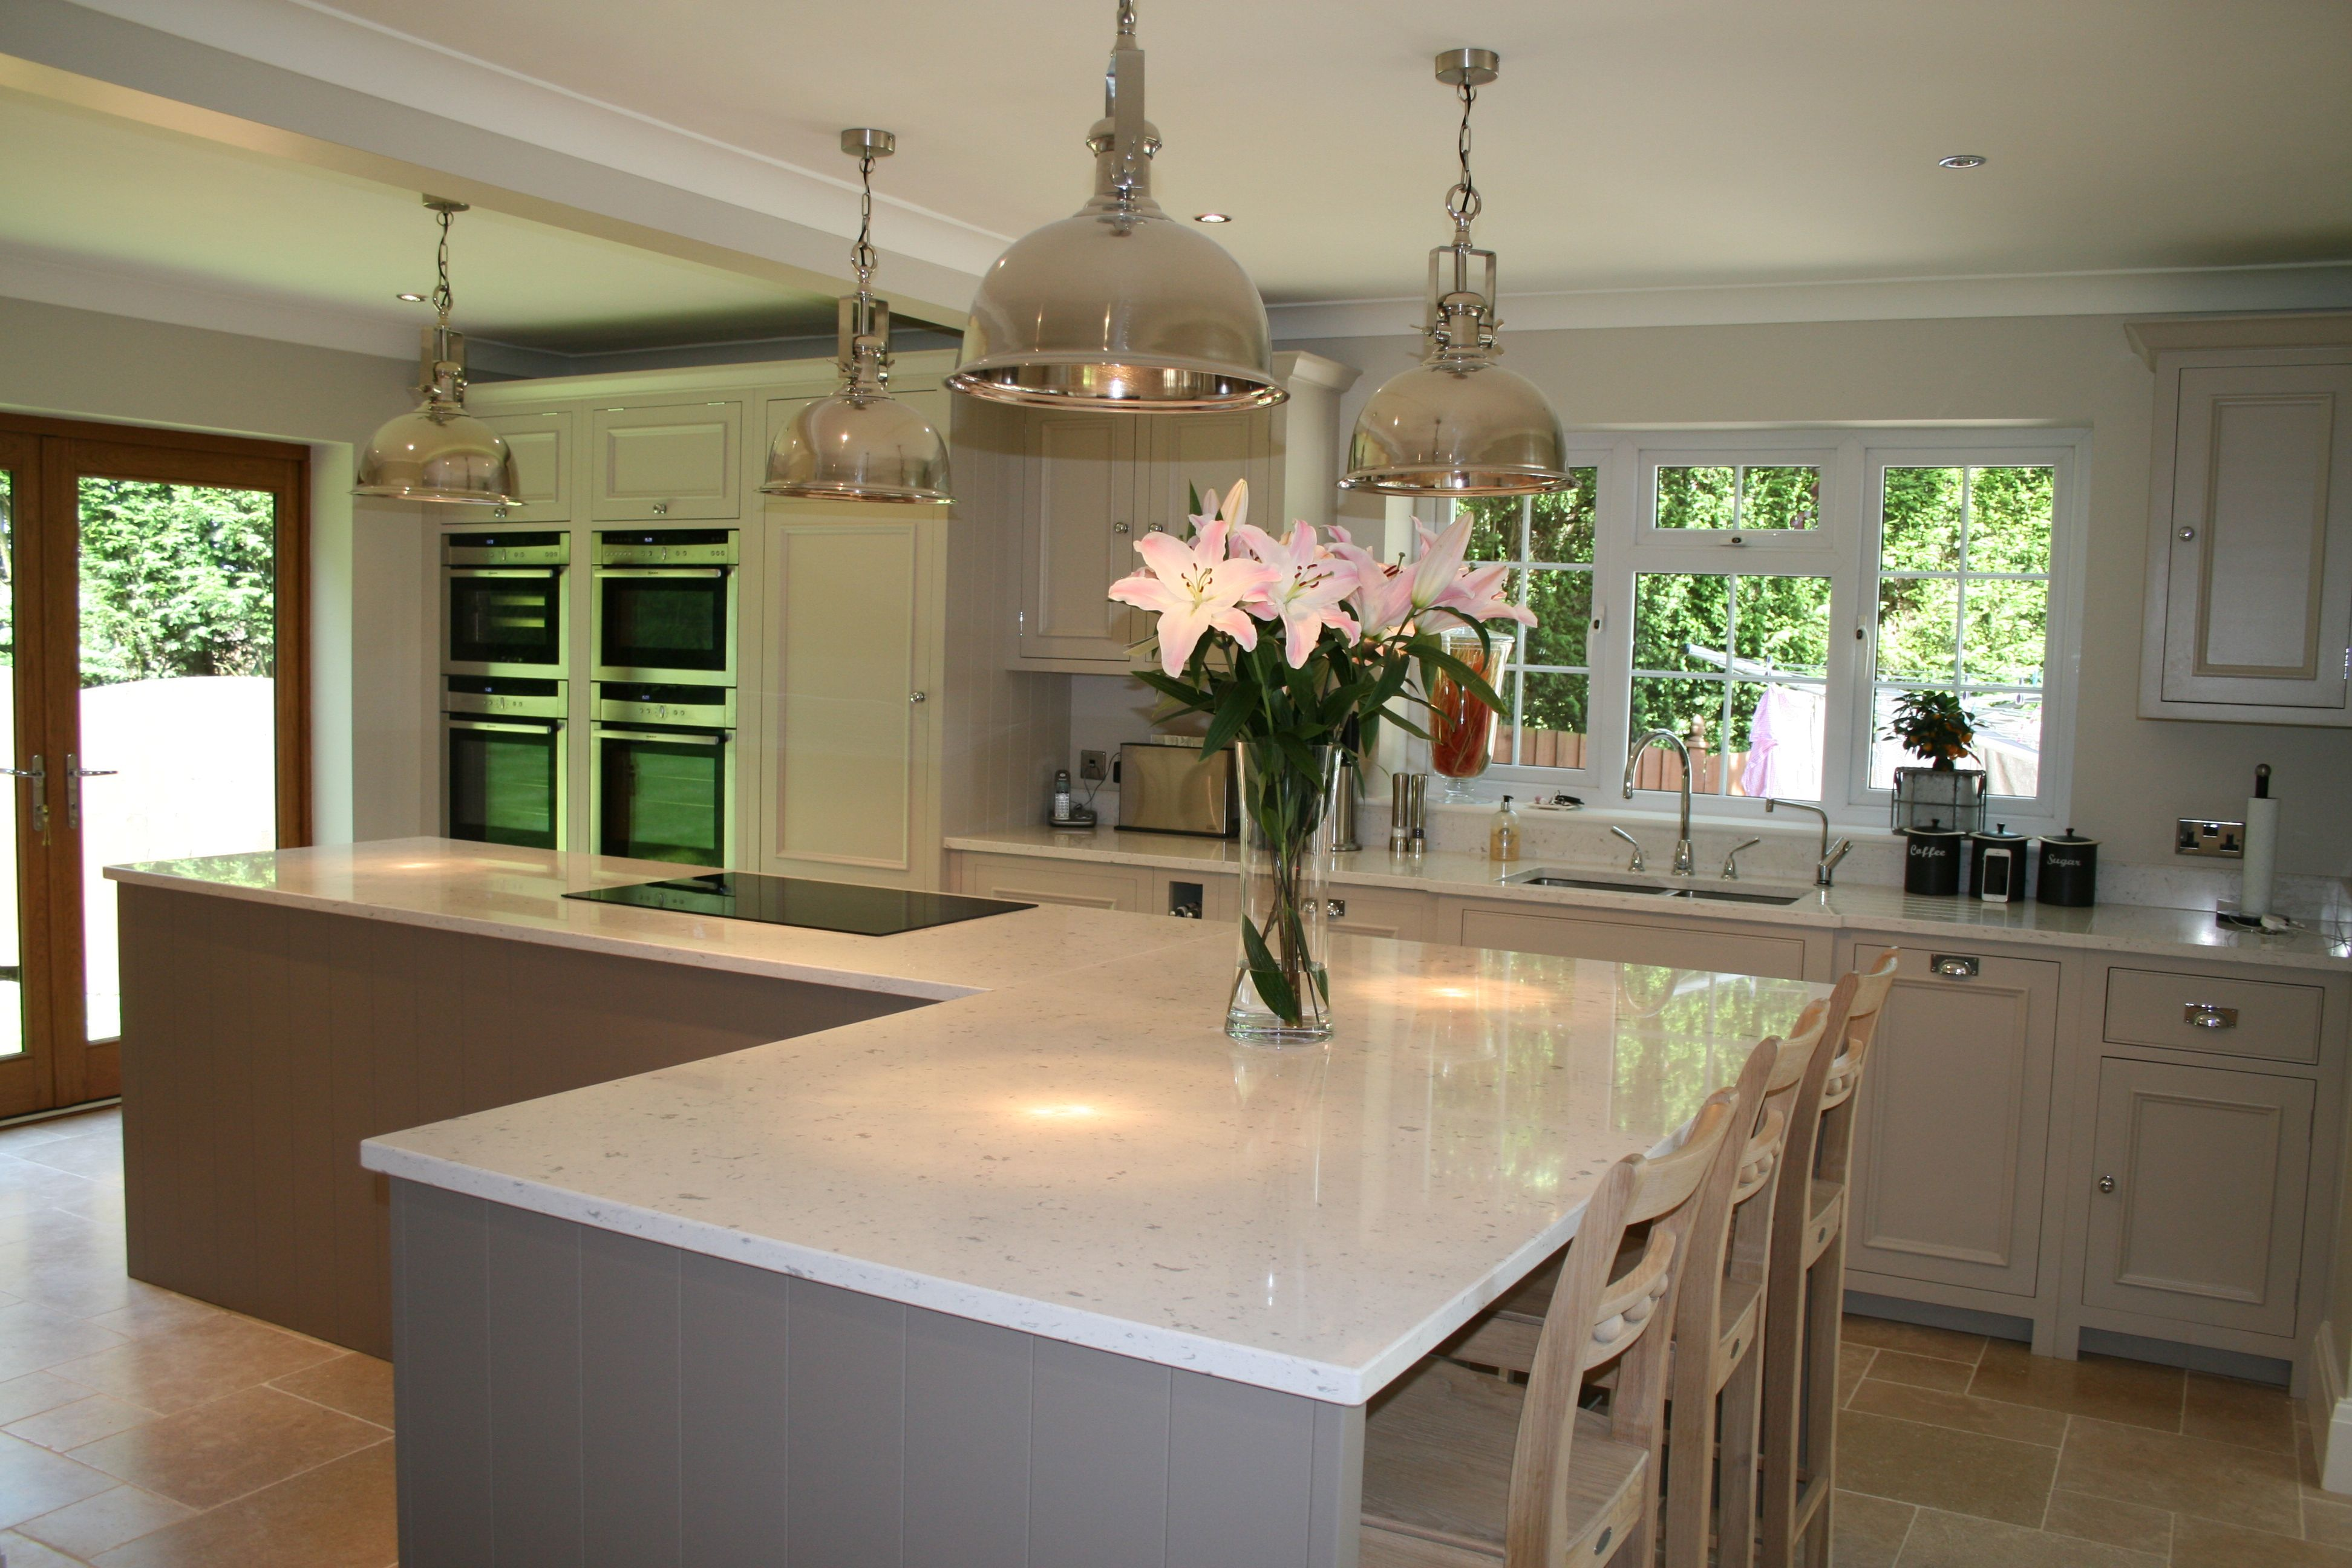 Neptune Chichester Kitchen Painted In Farrow And Ball